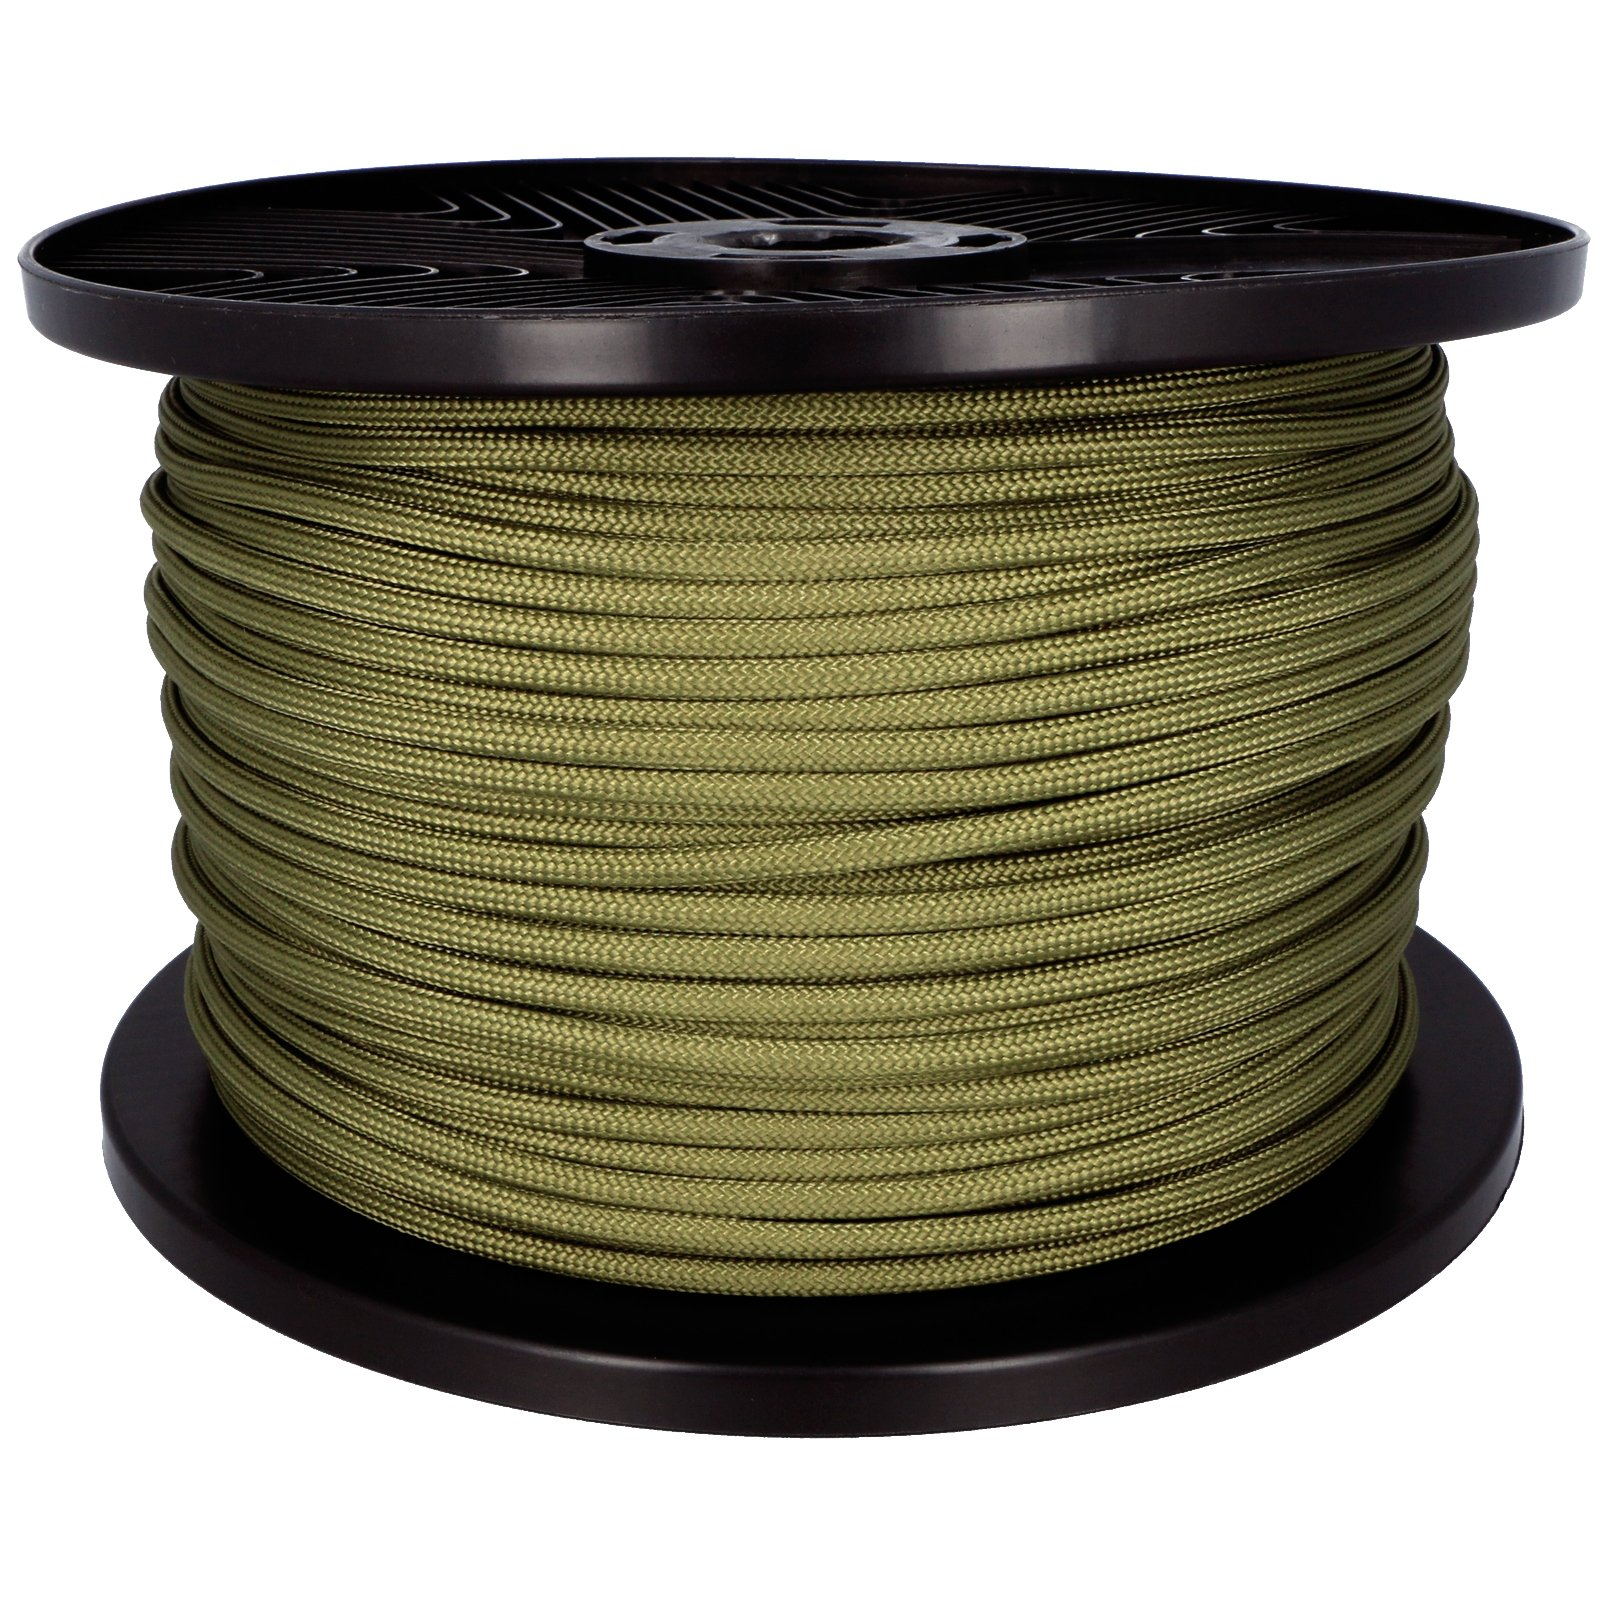 550lbs Strength Survival Paracord Rope Camping Hiking OD Green - 25ft